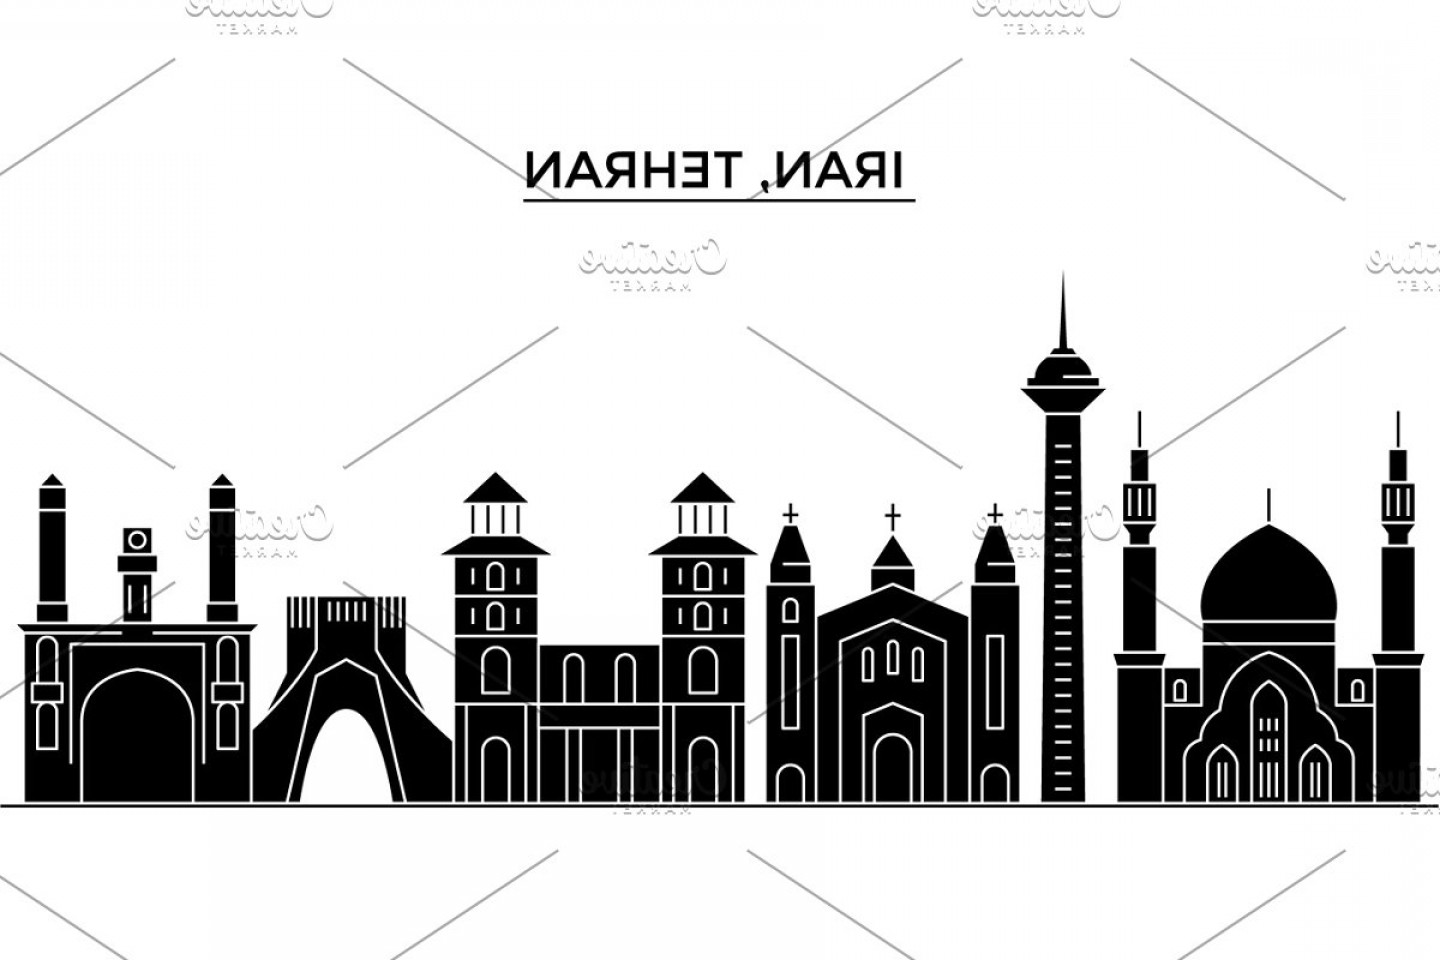 Architecture Vector: Iran Tehran Architecture Vector City Skyline Travel Cityscape With Landmarks Buildings Isolated Sights On Background